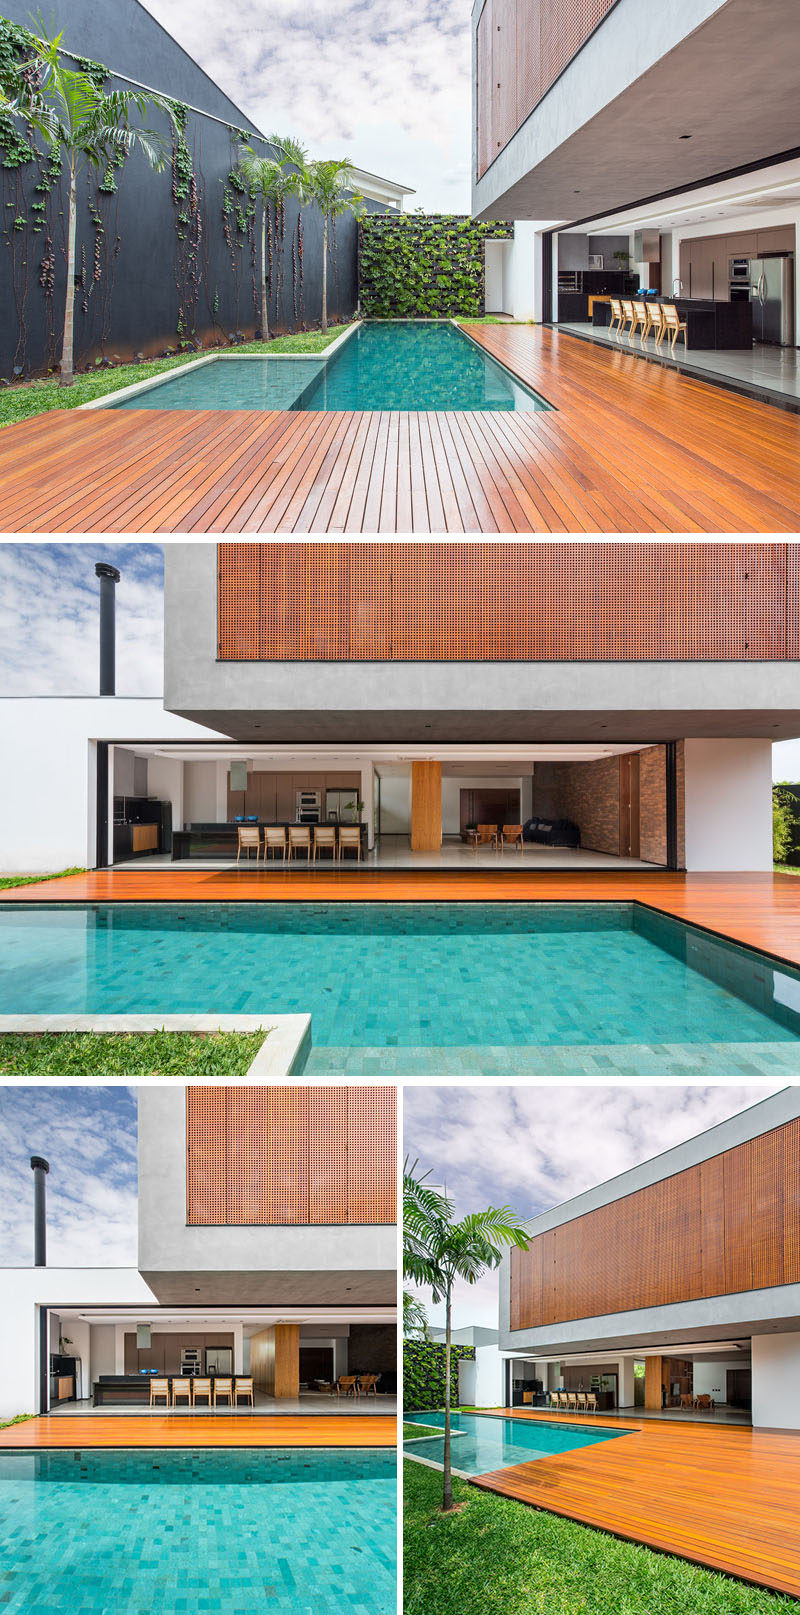 A large wooden deck wraps around this swimming pool that's located off the main living area of this Brazilian home.